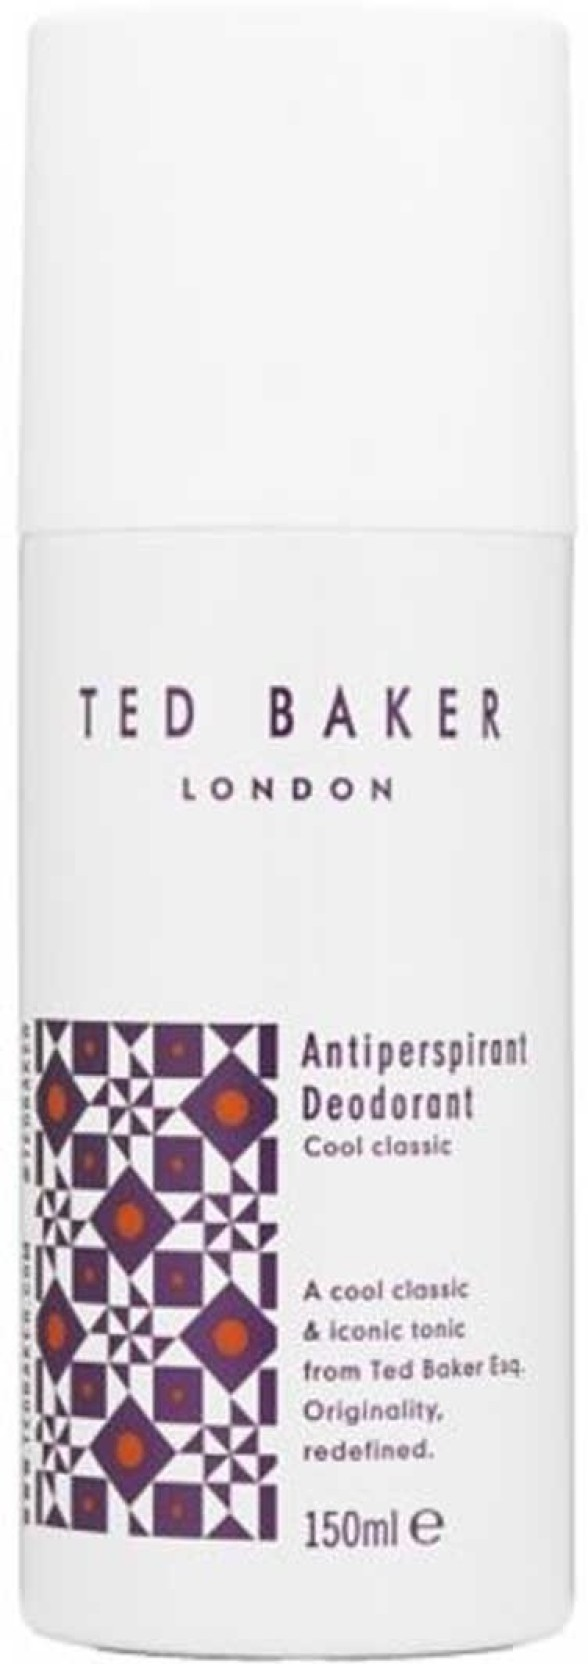 f958bc0ed13c Ted Baker London Antiperspirant Deodorant Cool Classic Body Spray ...